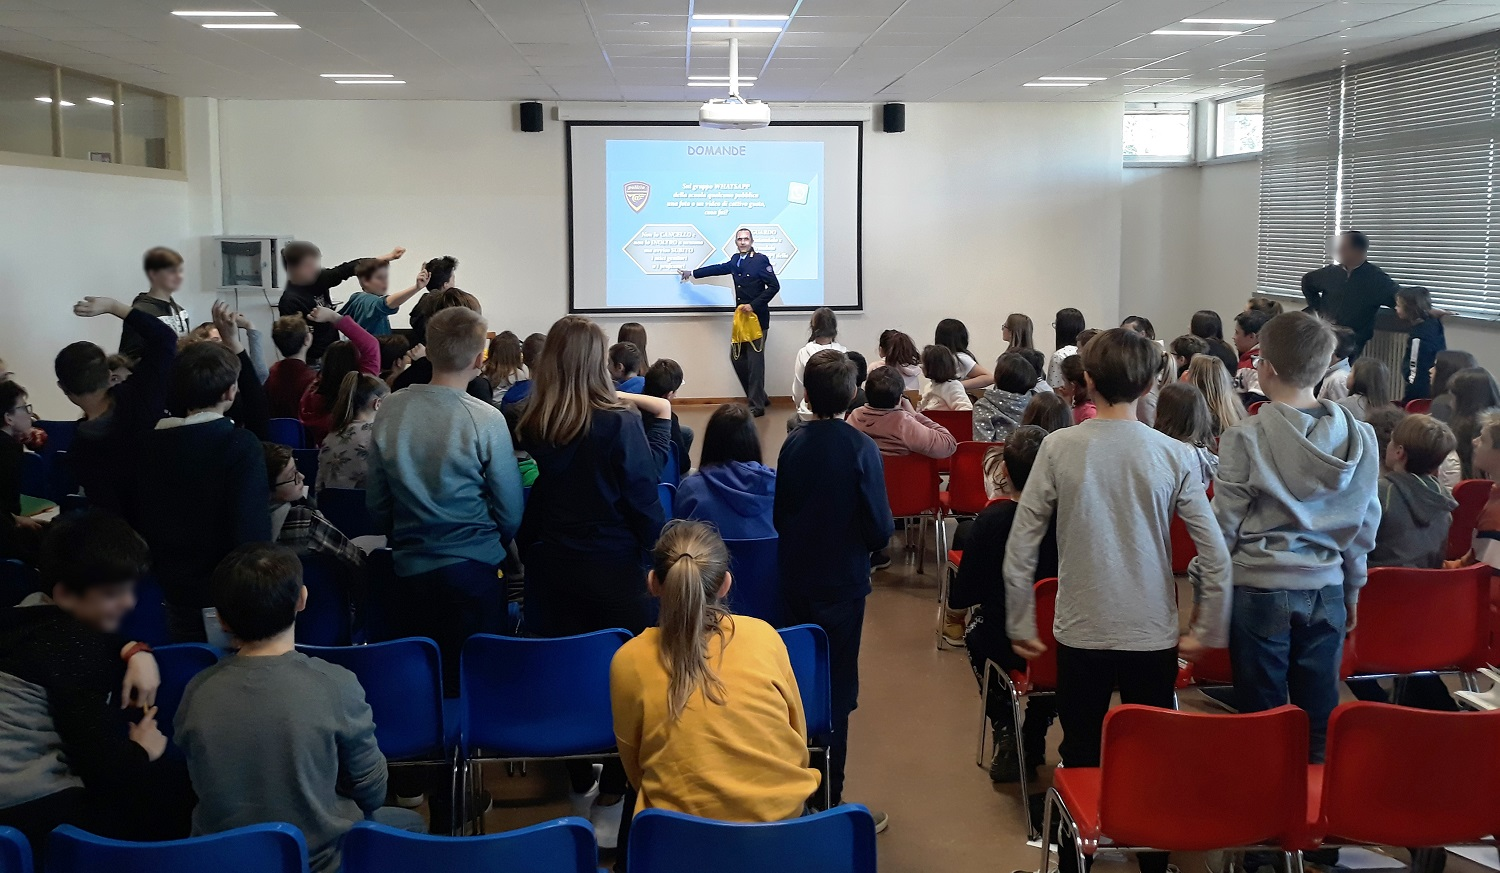 Gorizia - Safer Internet Day 2019